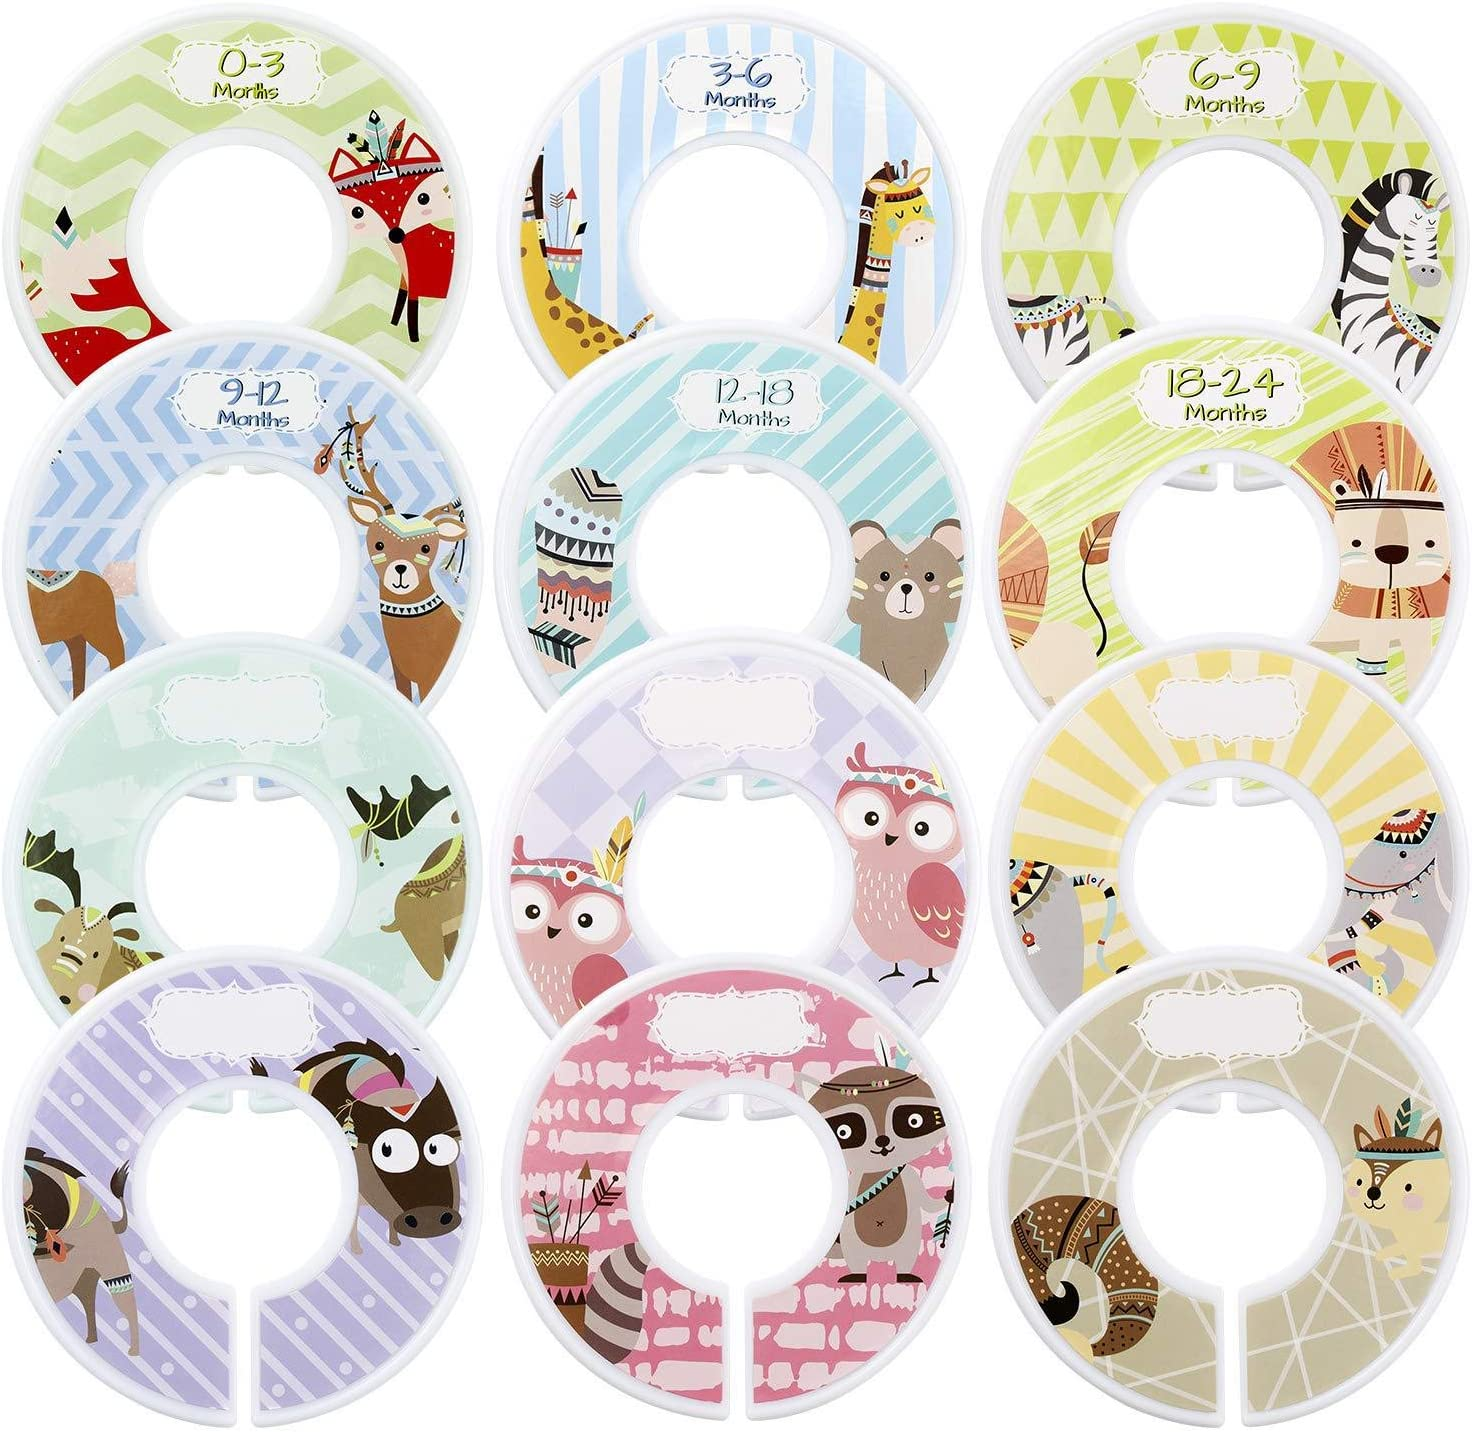 Nursery Closet Organizer for Boy or Girl Size Age Dividers from Newborn Infant to 24 Months with Blank HIFOT Closet Dividers for Baby Clothes 12 Set